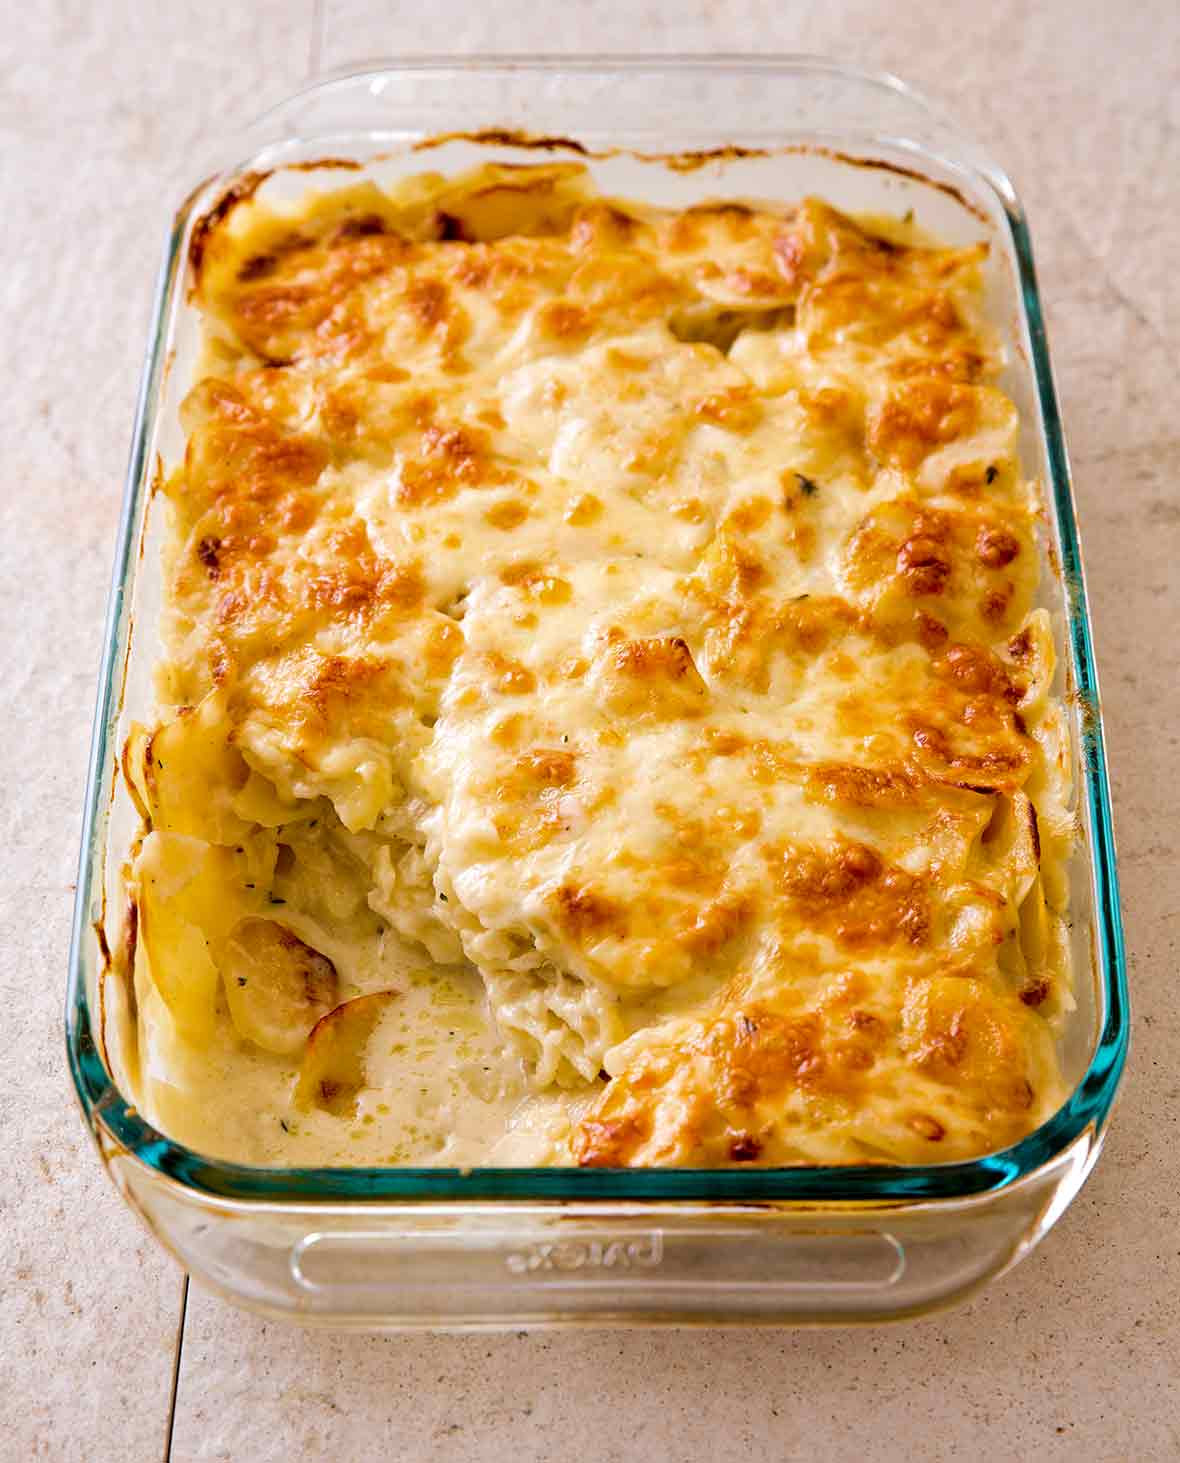 Best Scalloped Potatoes Recipe  Scalloped Potatoes Recipe